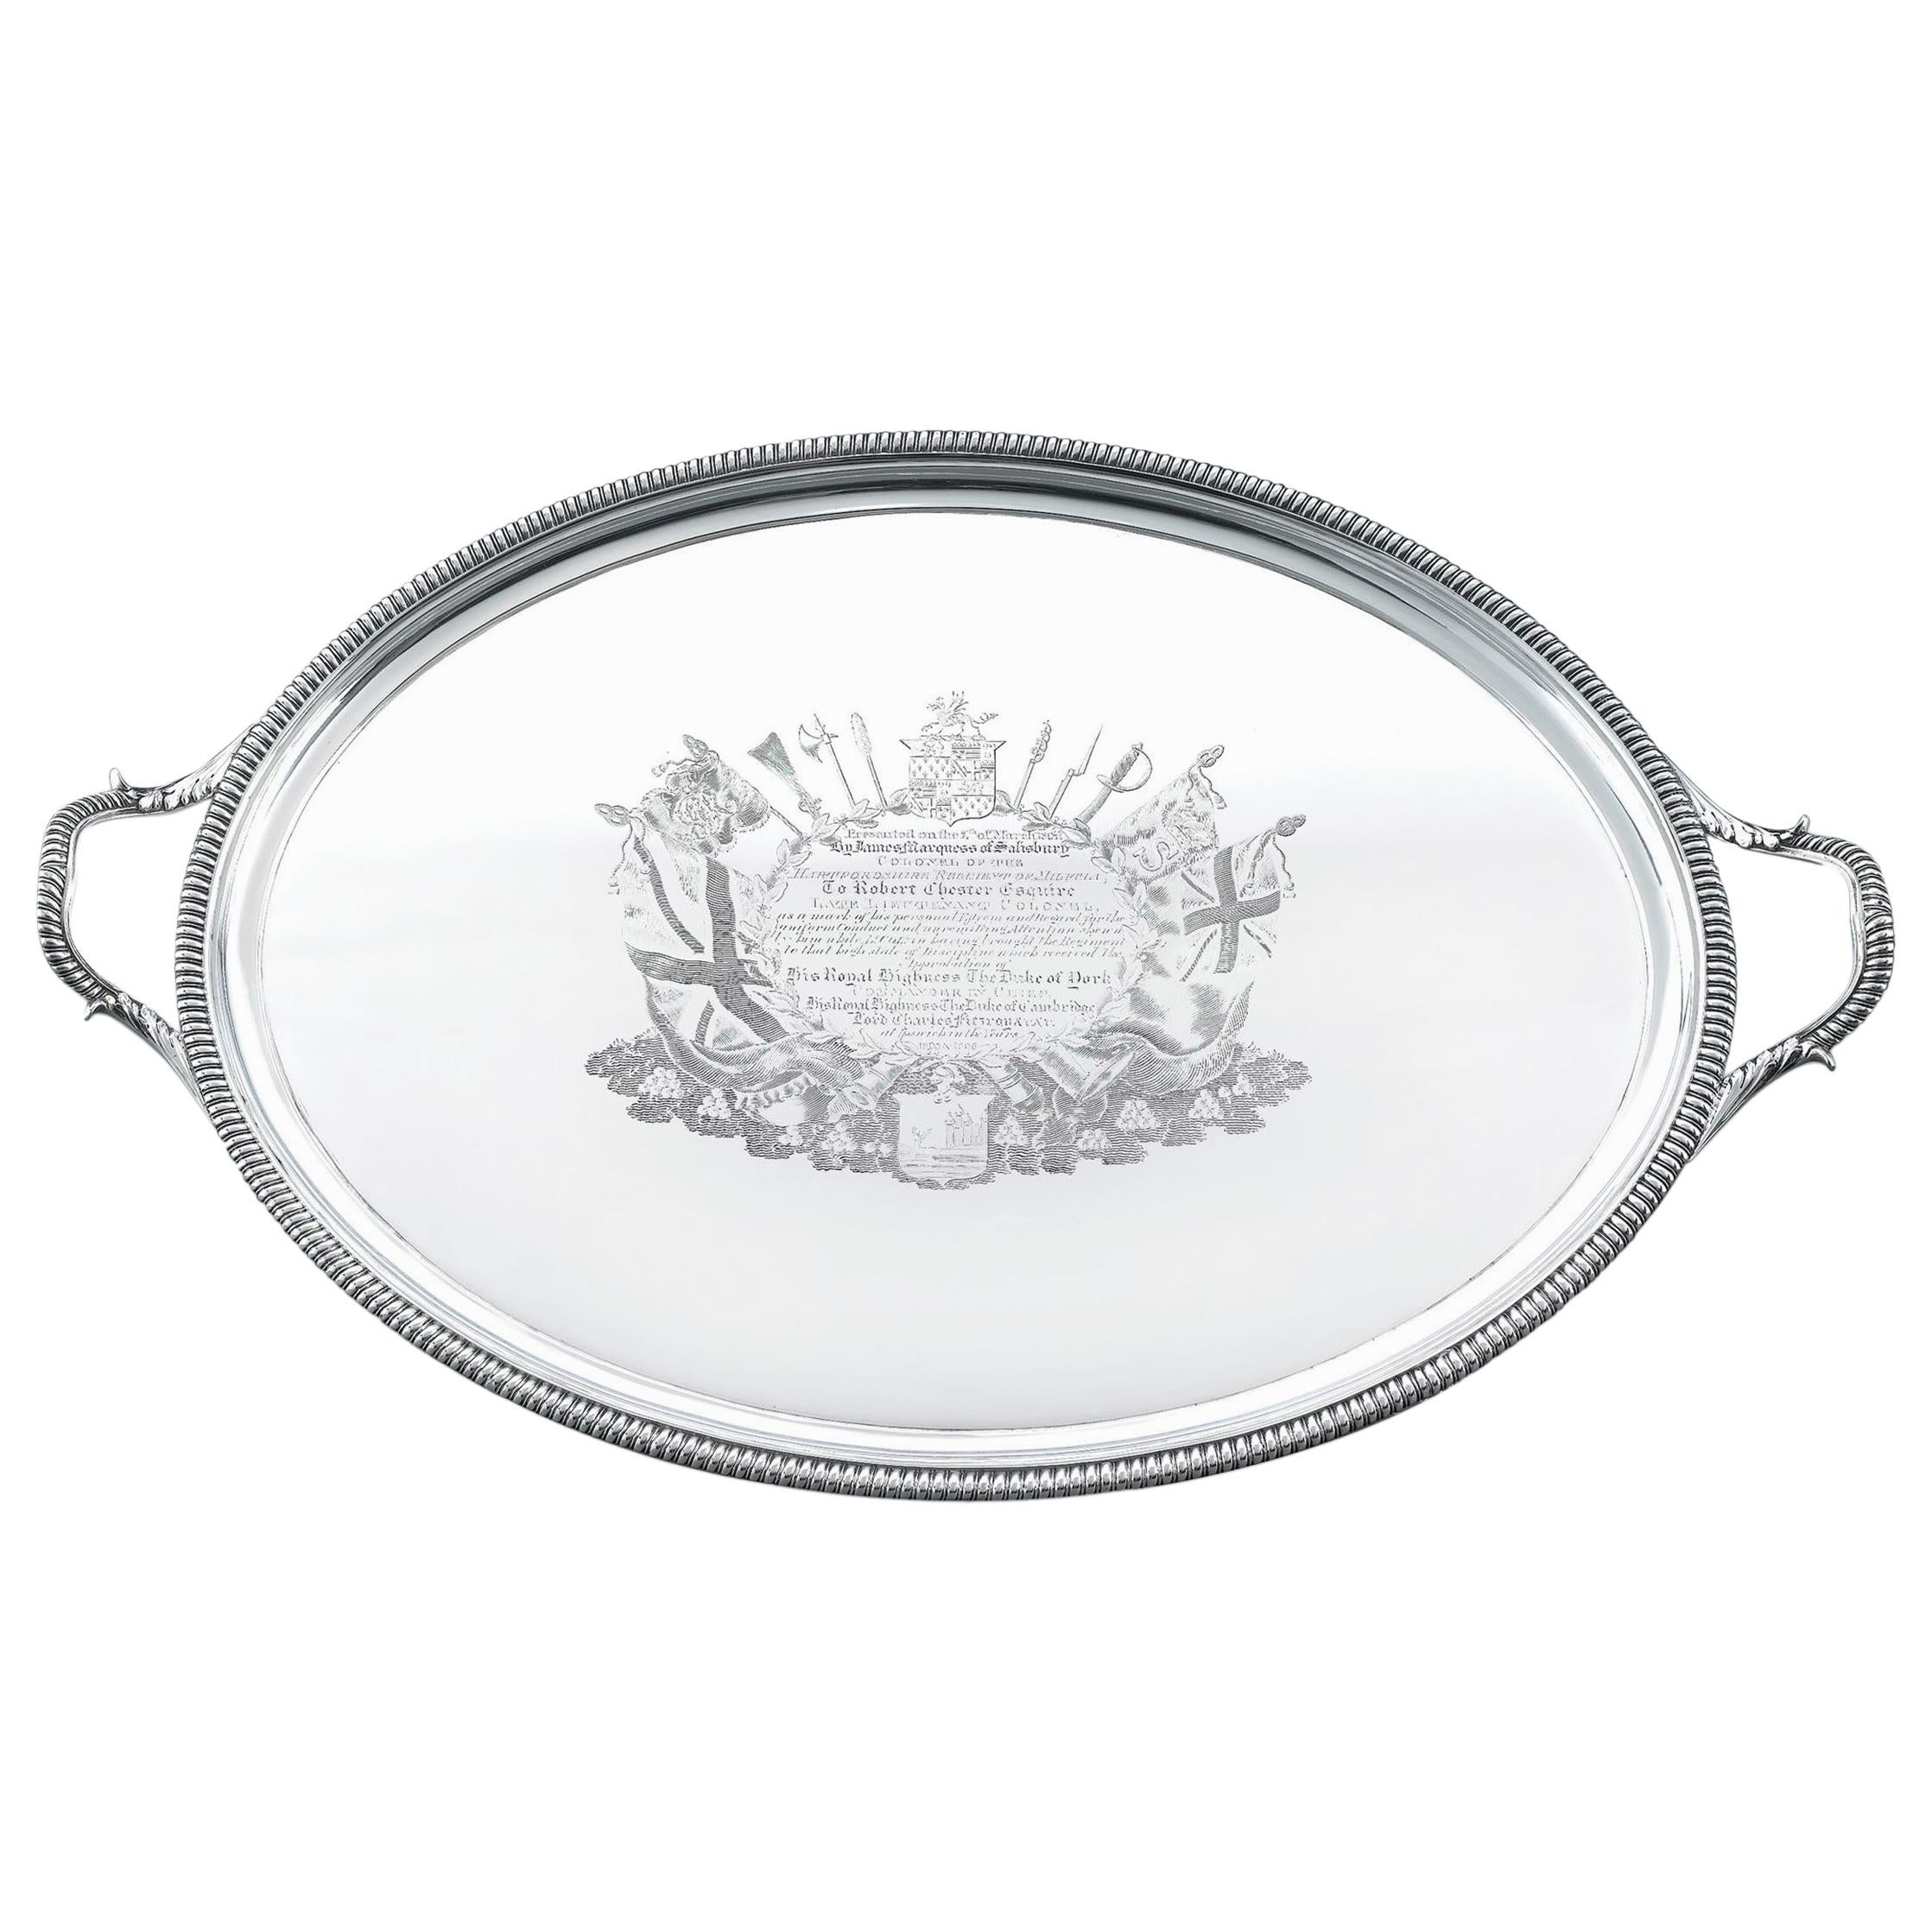 George III Silver Tray for Lt. Robert Chester